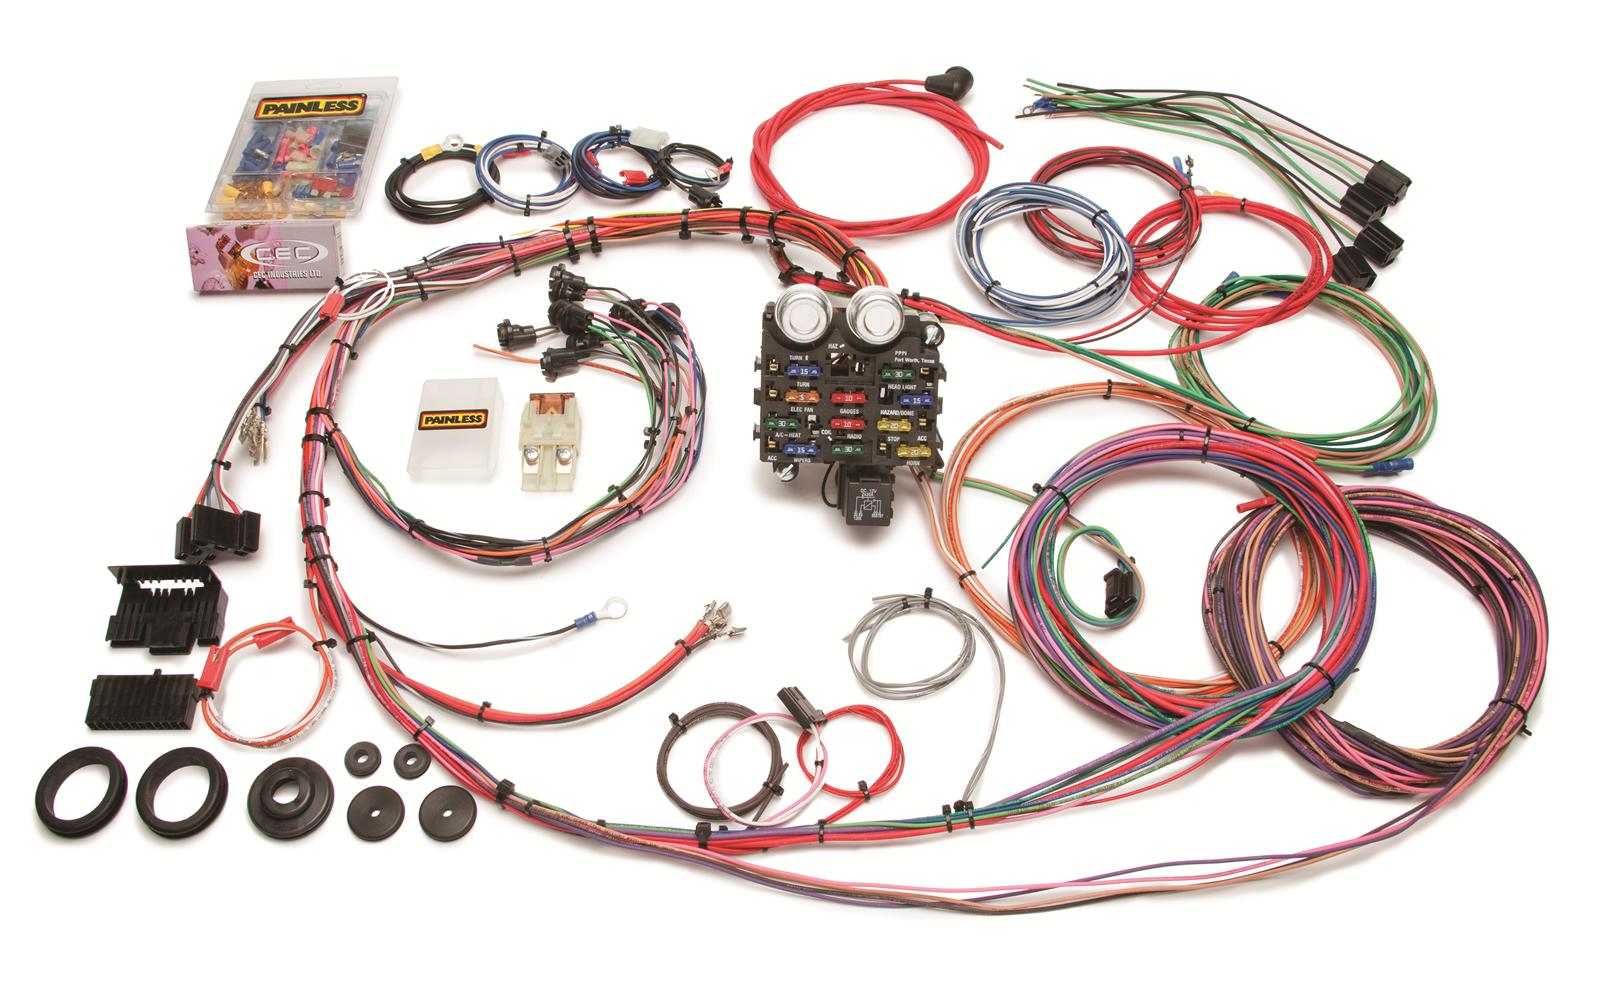 prf 10112_xl painless performance 19 circuit gmc chevy truck harnesses 10112 gm truck wiring harness at readyjetset.co